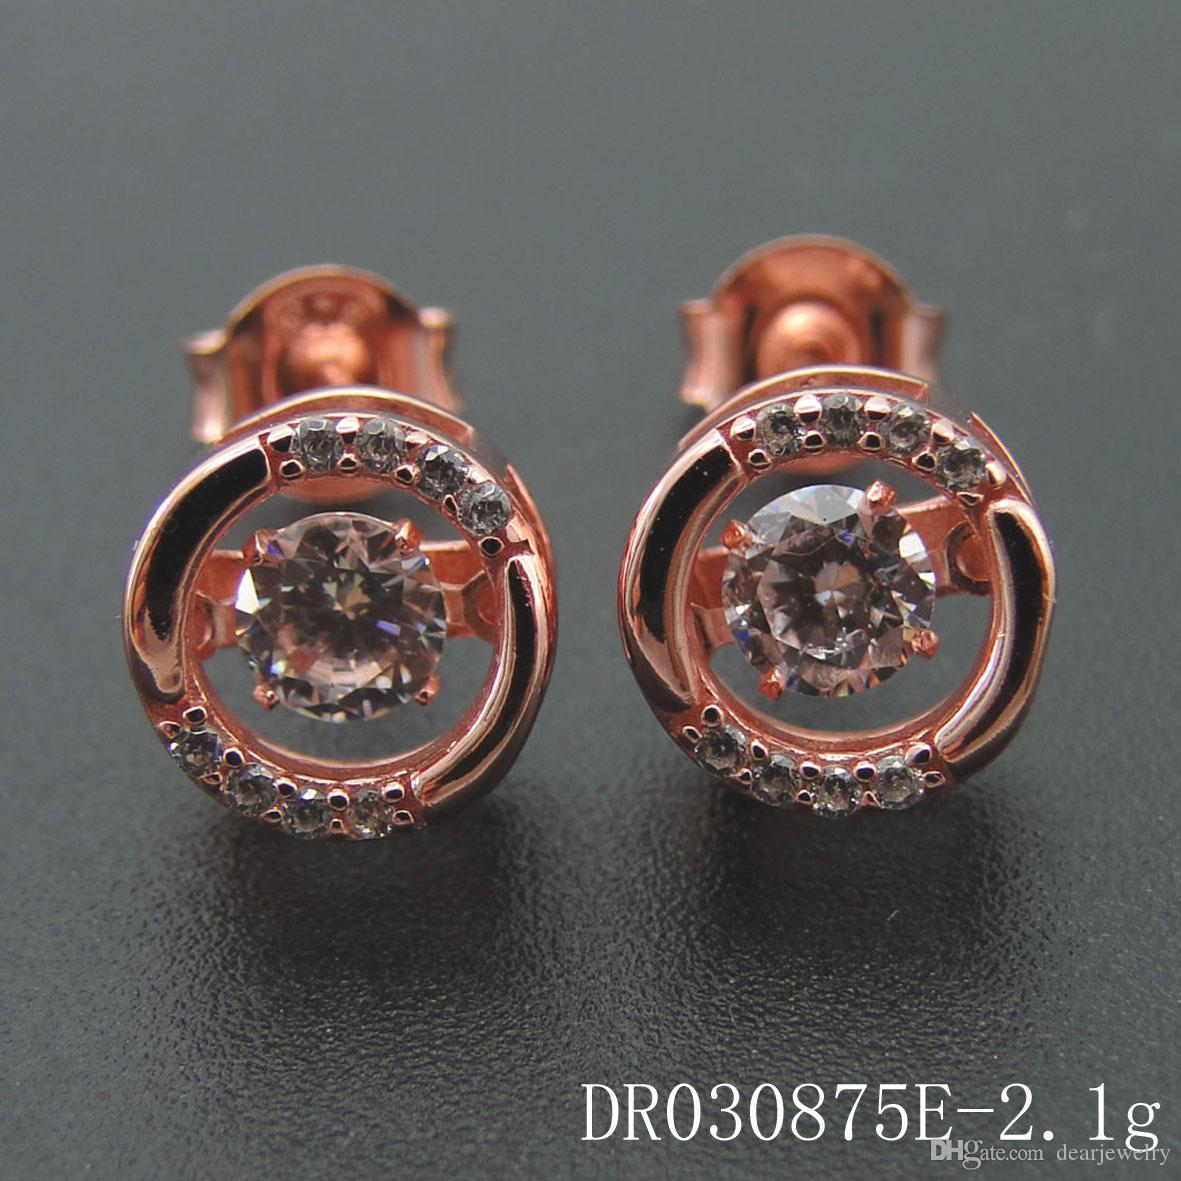 Fashion jewelry 925 silver Long sloshing periphery zircon Betrothal gifts earrings circular Rose Gold Plated DR030875E-R Free shipping